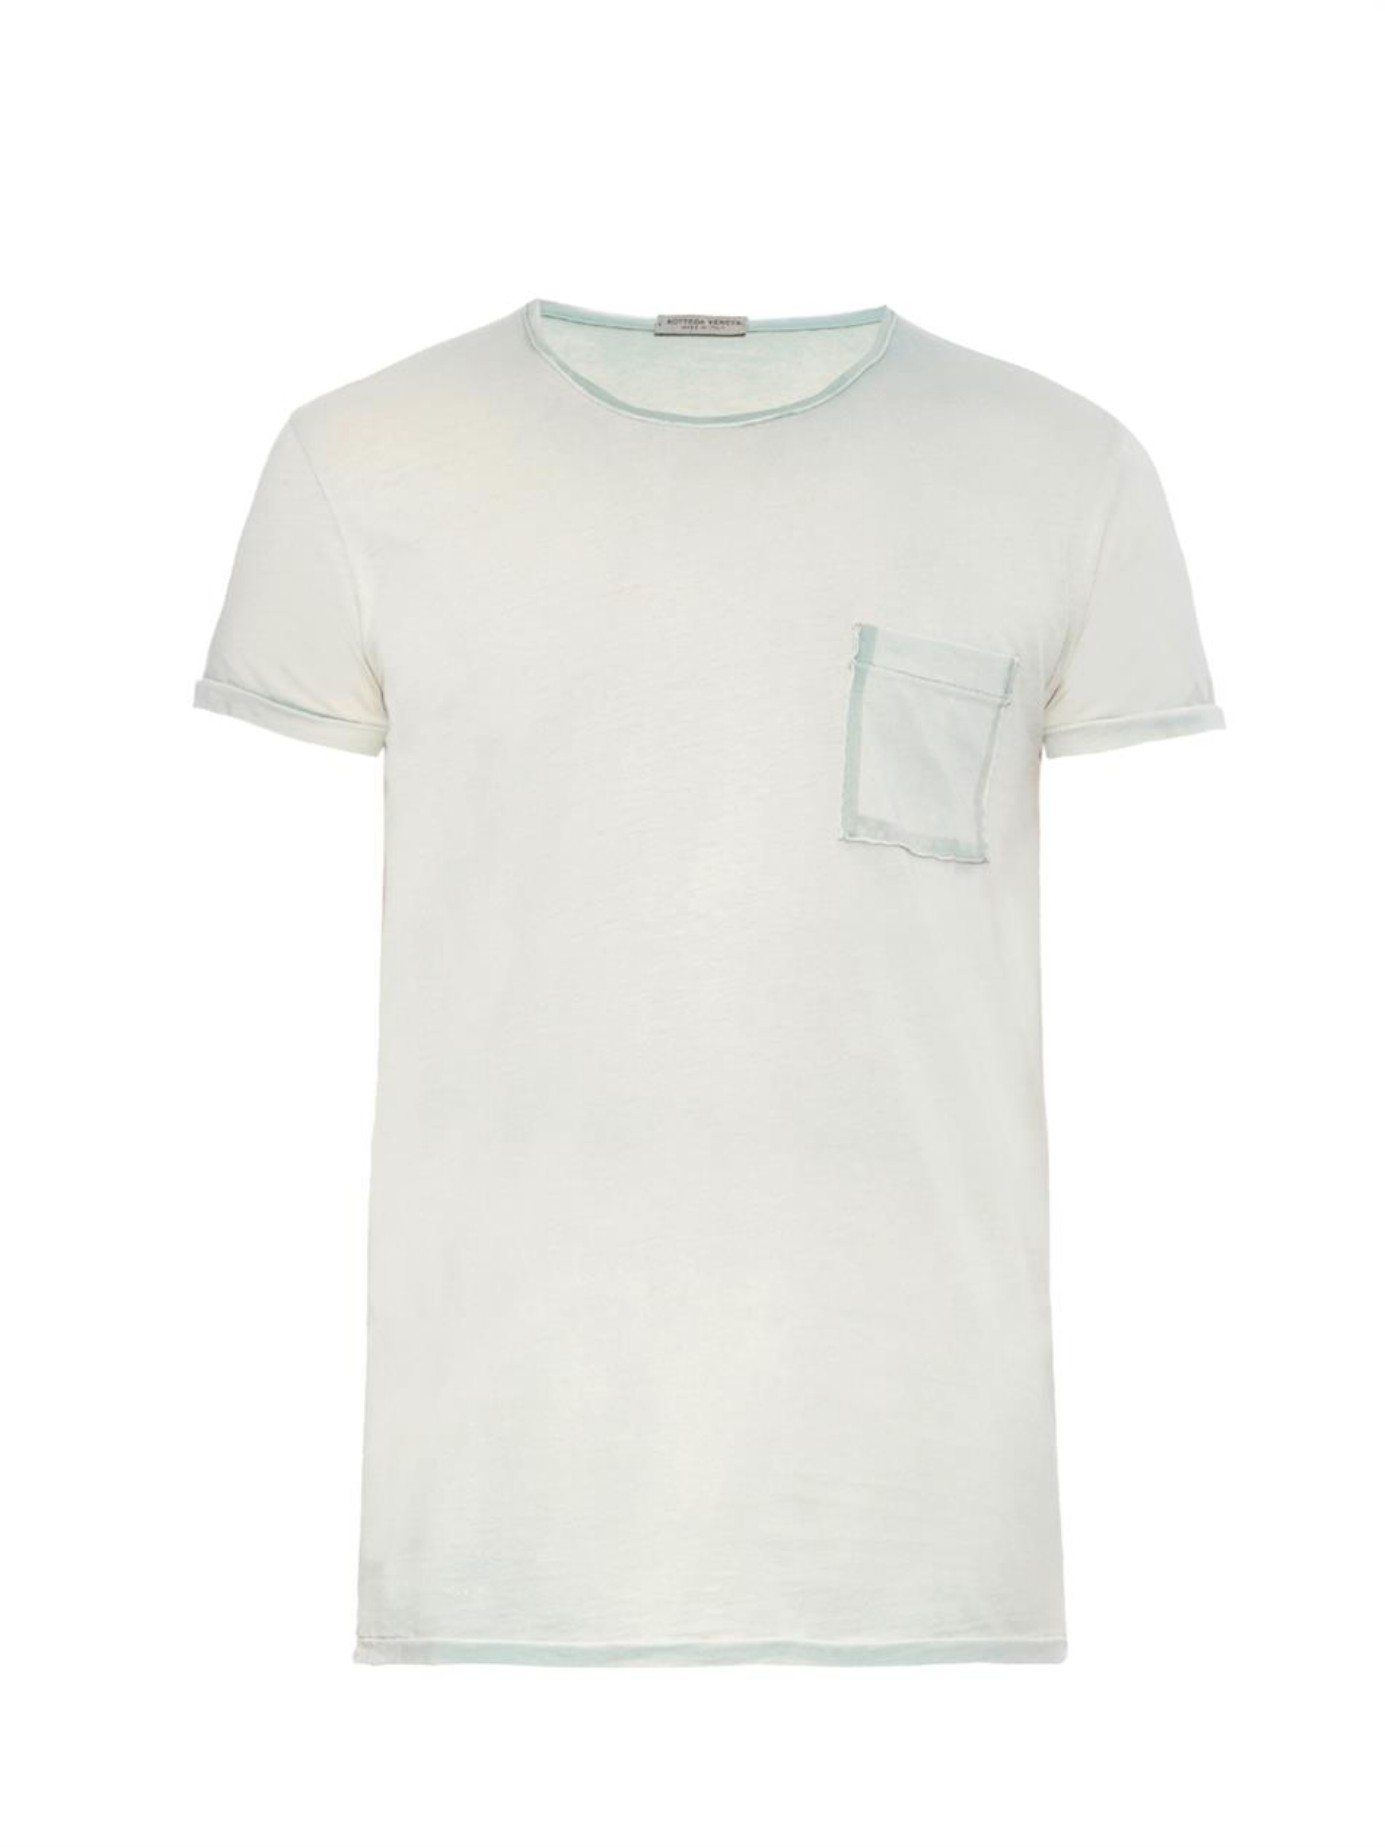 Bottega veneta crew neck cotton jersey t shirt in green for Bottega veneta t shirt